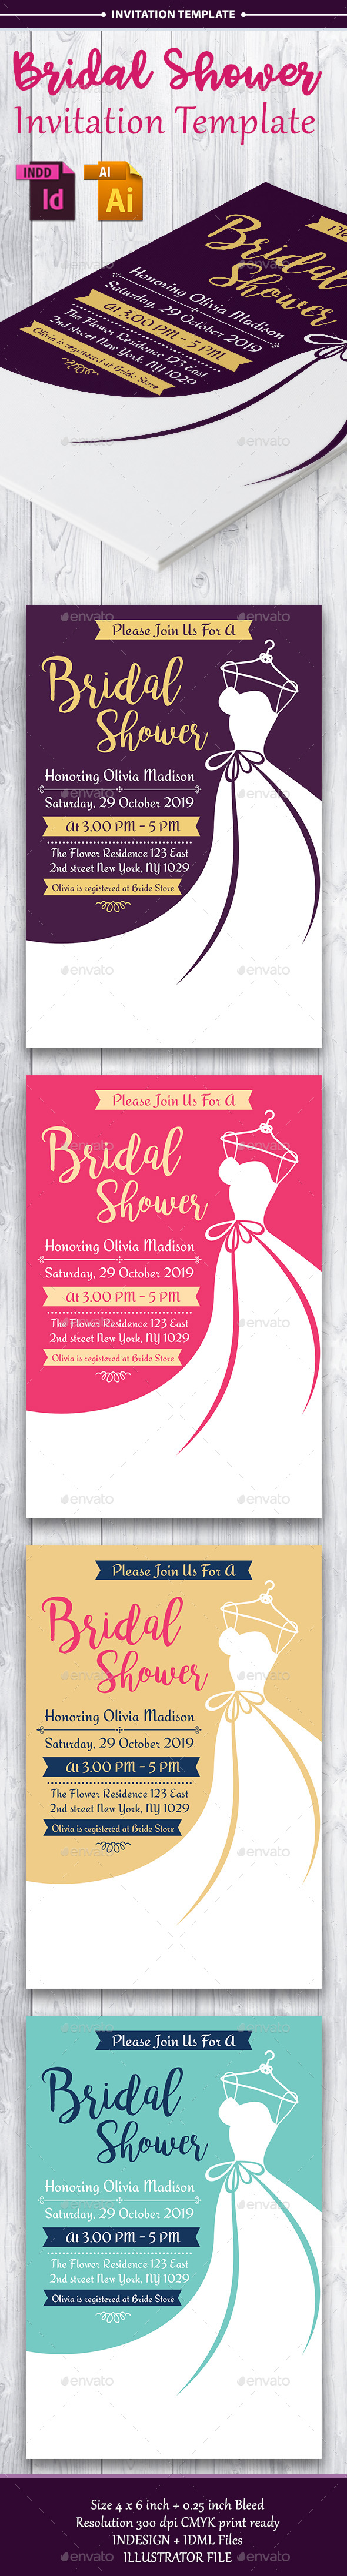 GraphicRiver Bridal Shower Invitation Template Vol 3 20884962